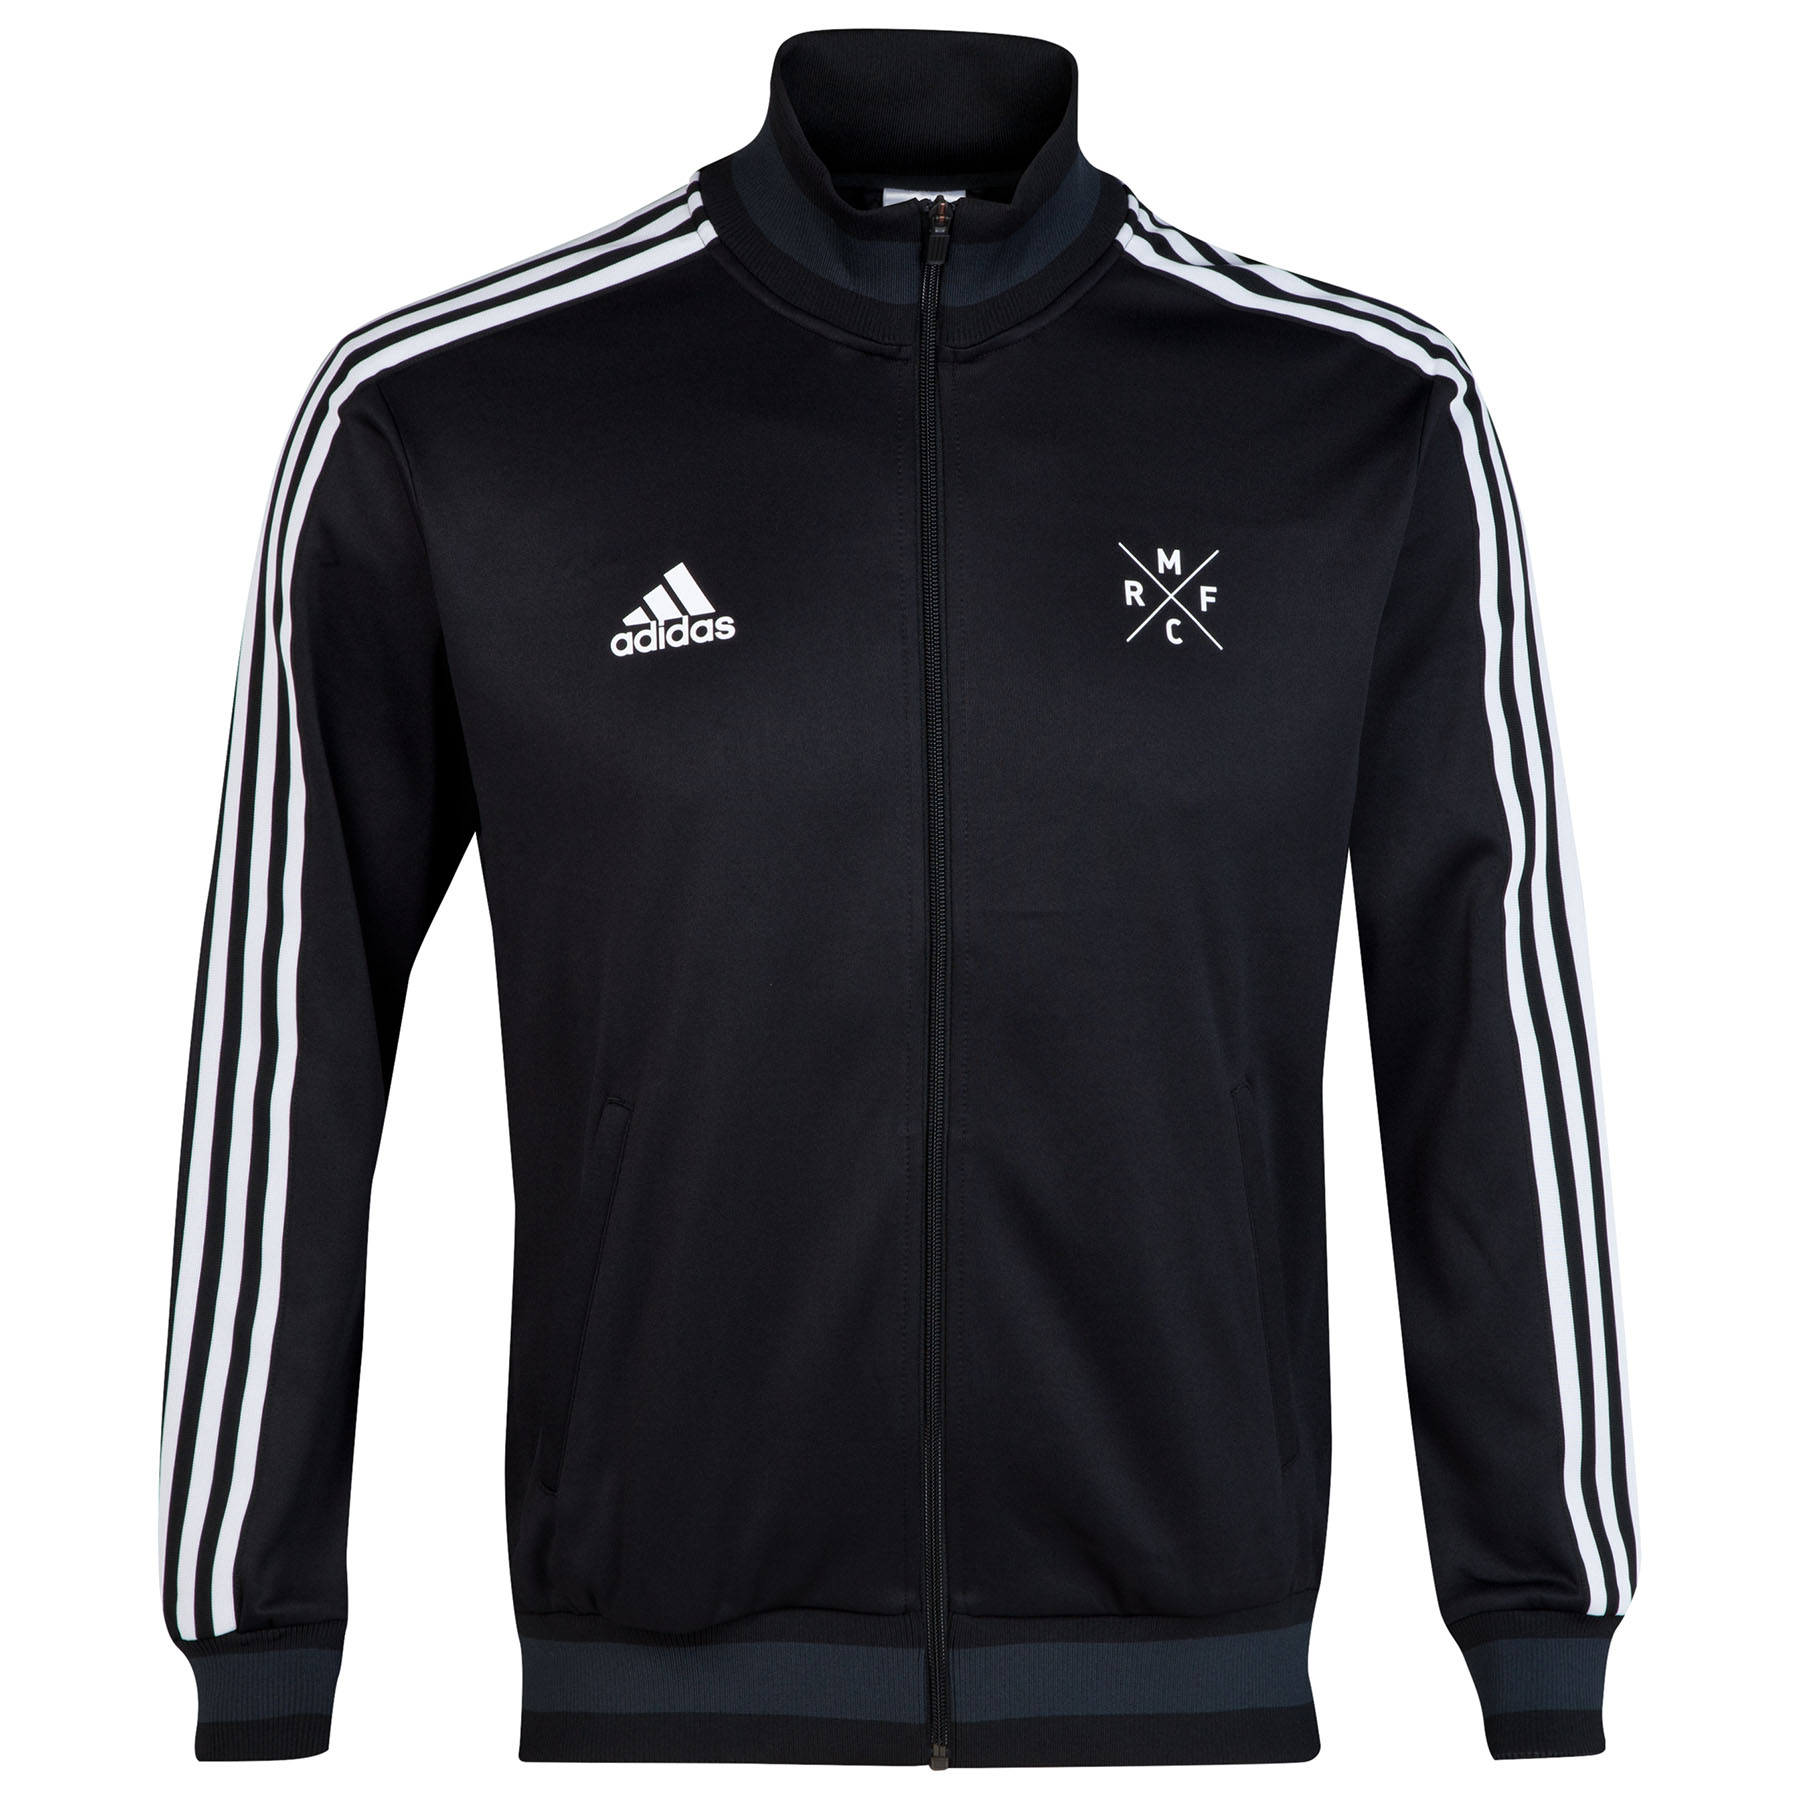 Real Madrid Casual Track Top